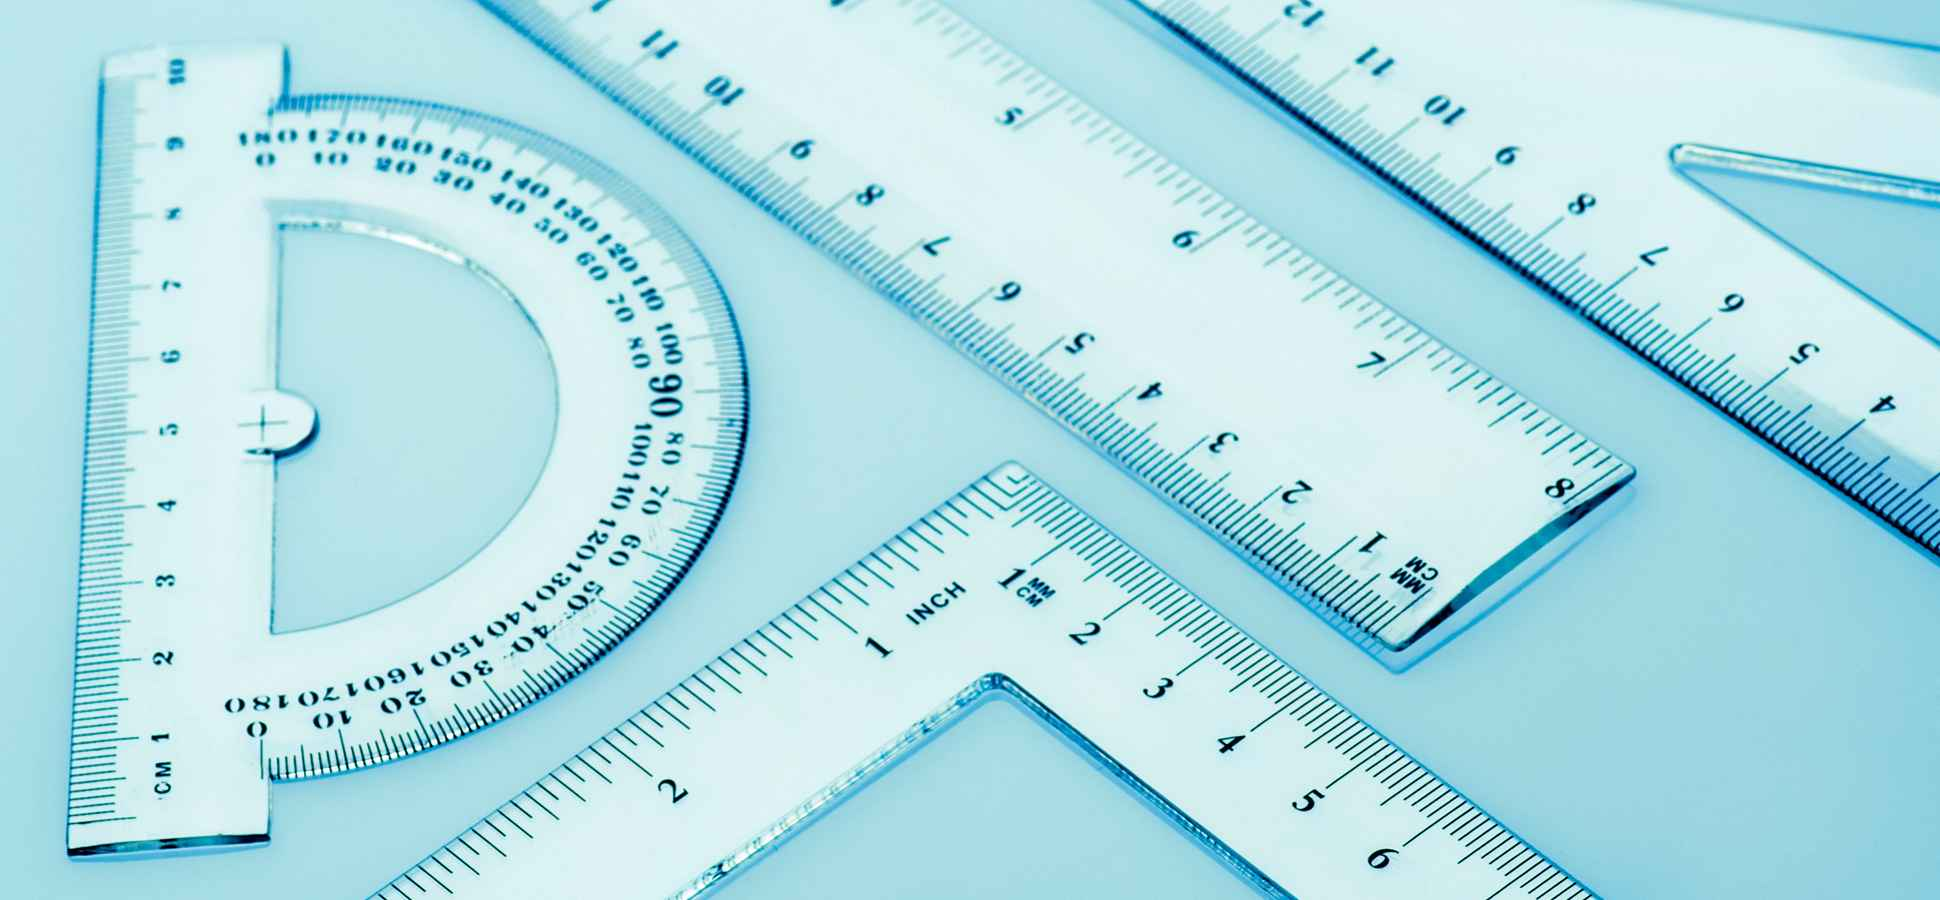 Finding an Ideal Metric for Innovation